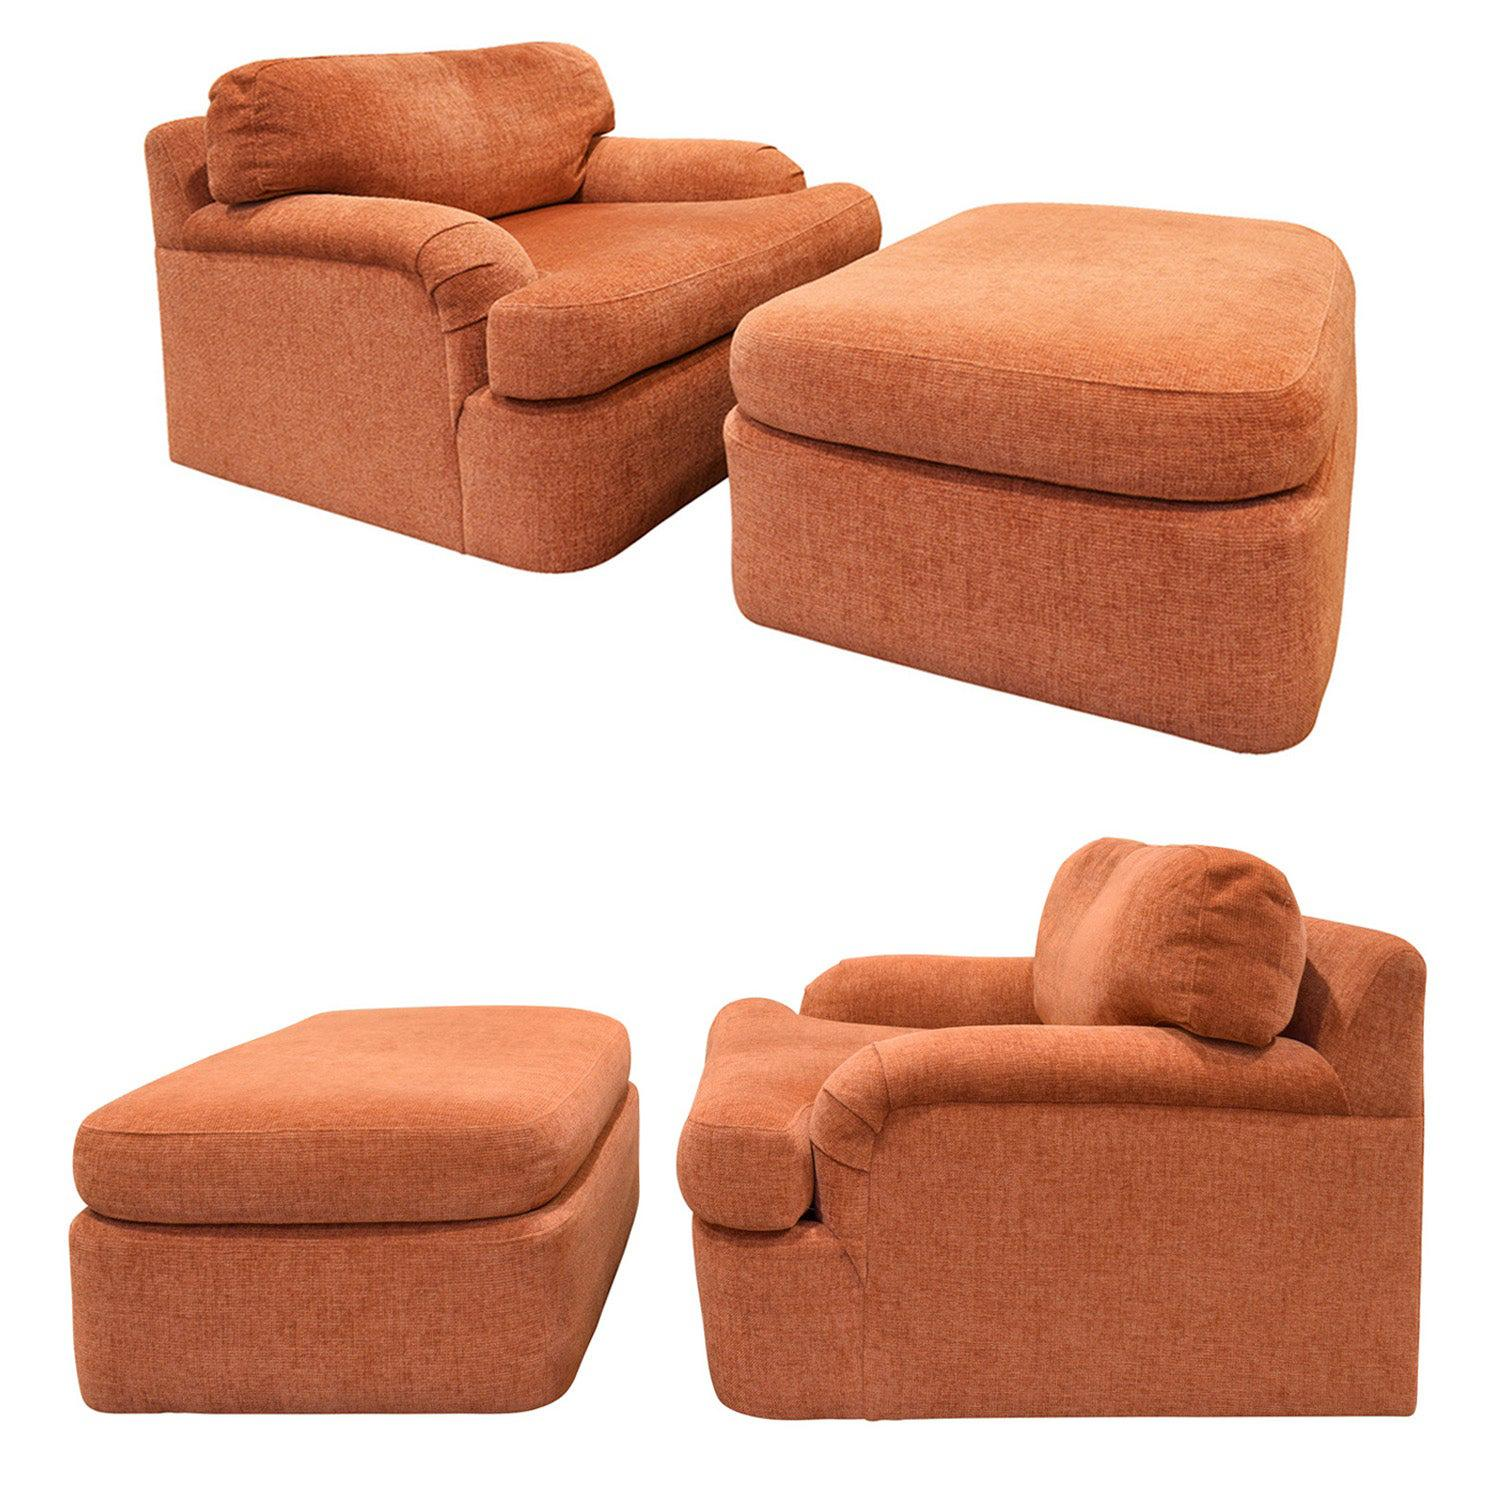 Milo Baughman Pair of Large Swiveling Lounge Chairs with Matching Ottomans 1970s